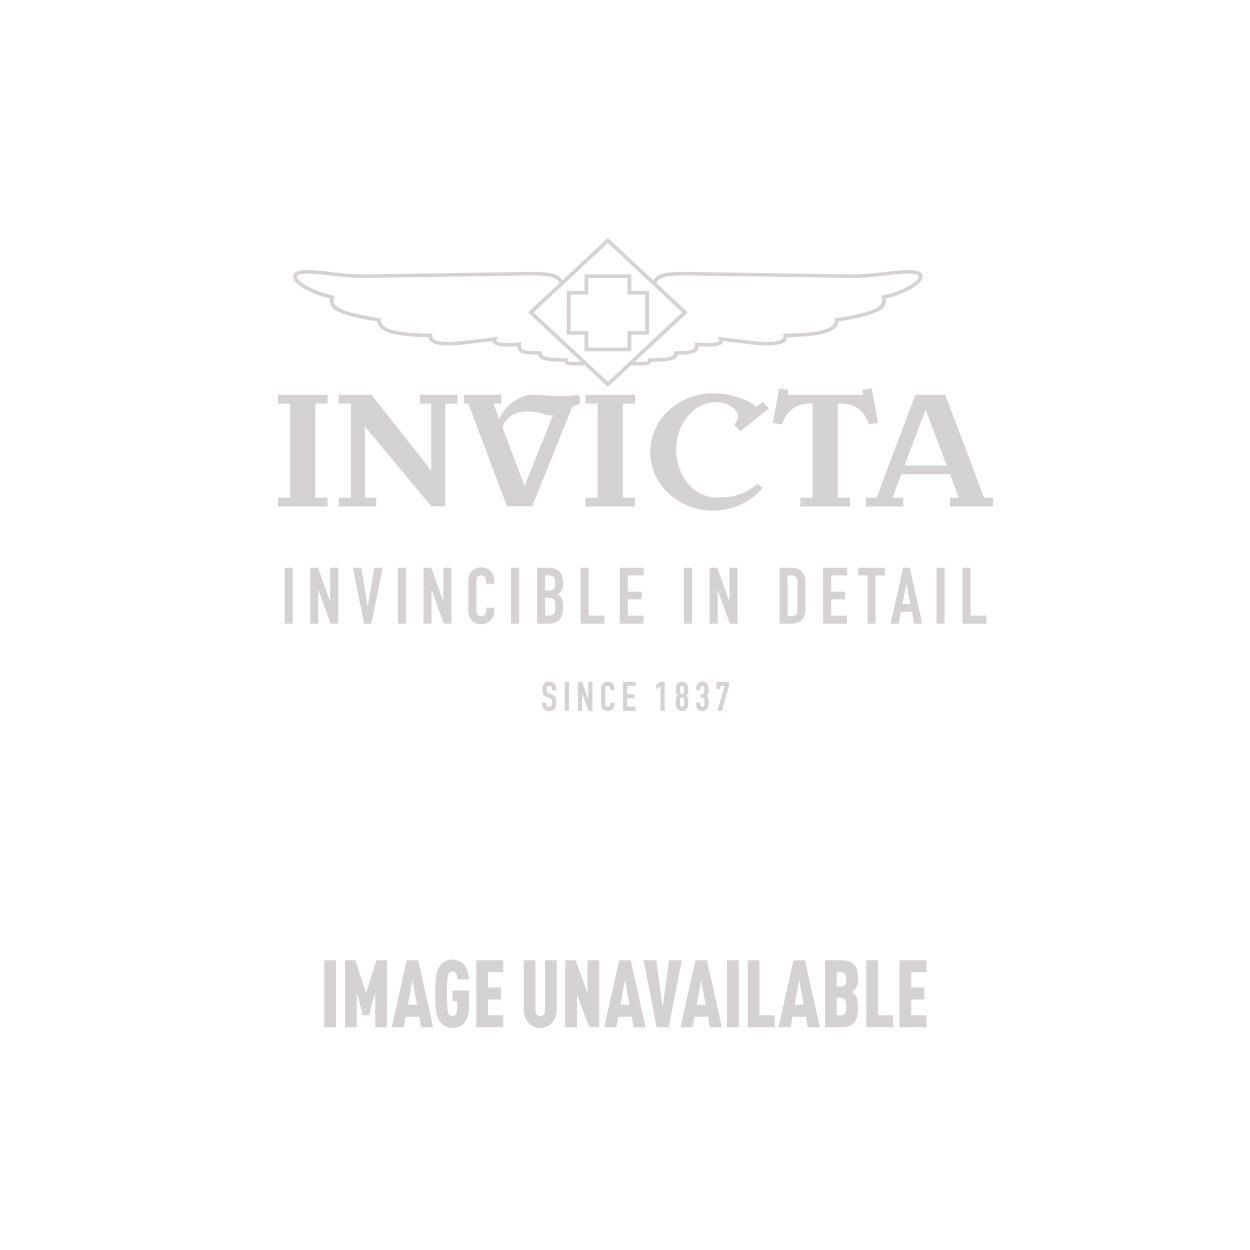 Invicta Coalition Forces Mens Automatic 48mm Stainless Steel Case, Black Dial - Model 31934